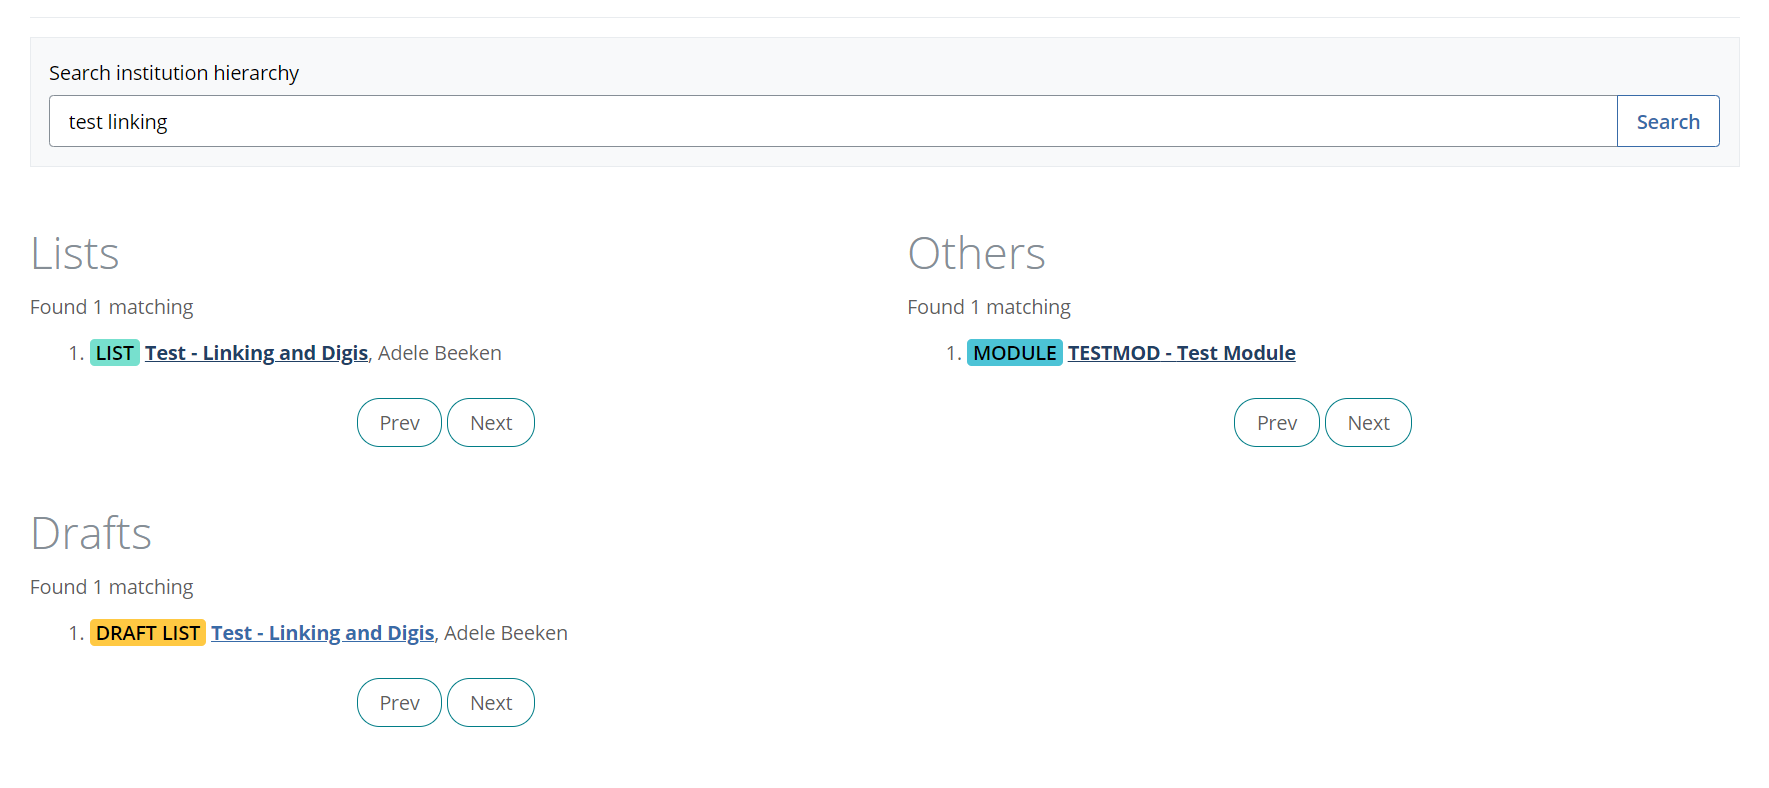 Screenshot showing List, Draft List and Module results for the same search